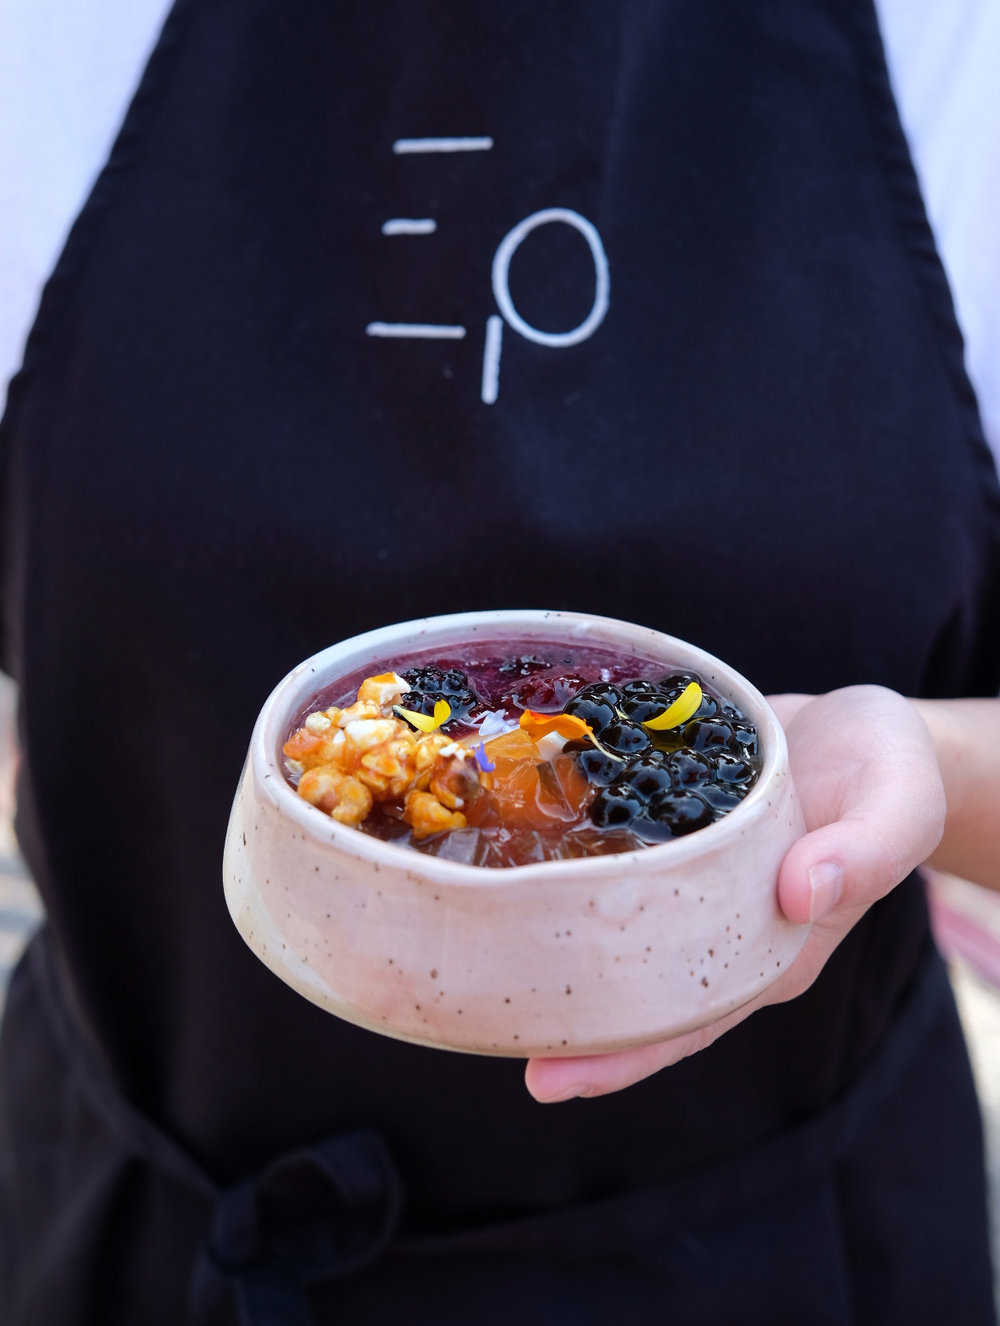 Week 3 Blackberry compote, Earl Grey tea jelly, Salted caramel popcorn, Tapioca pearls, Lavender syrup, Rosemary syrup, Ginger syrup